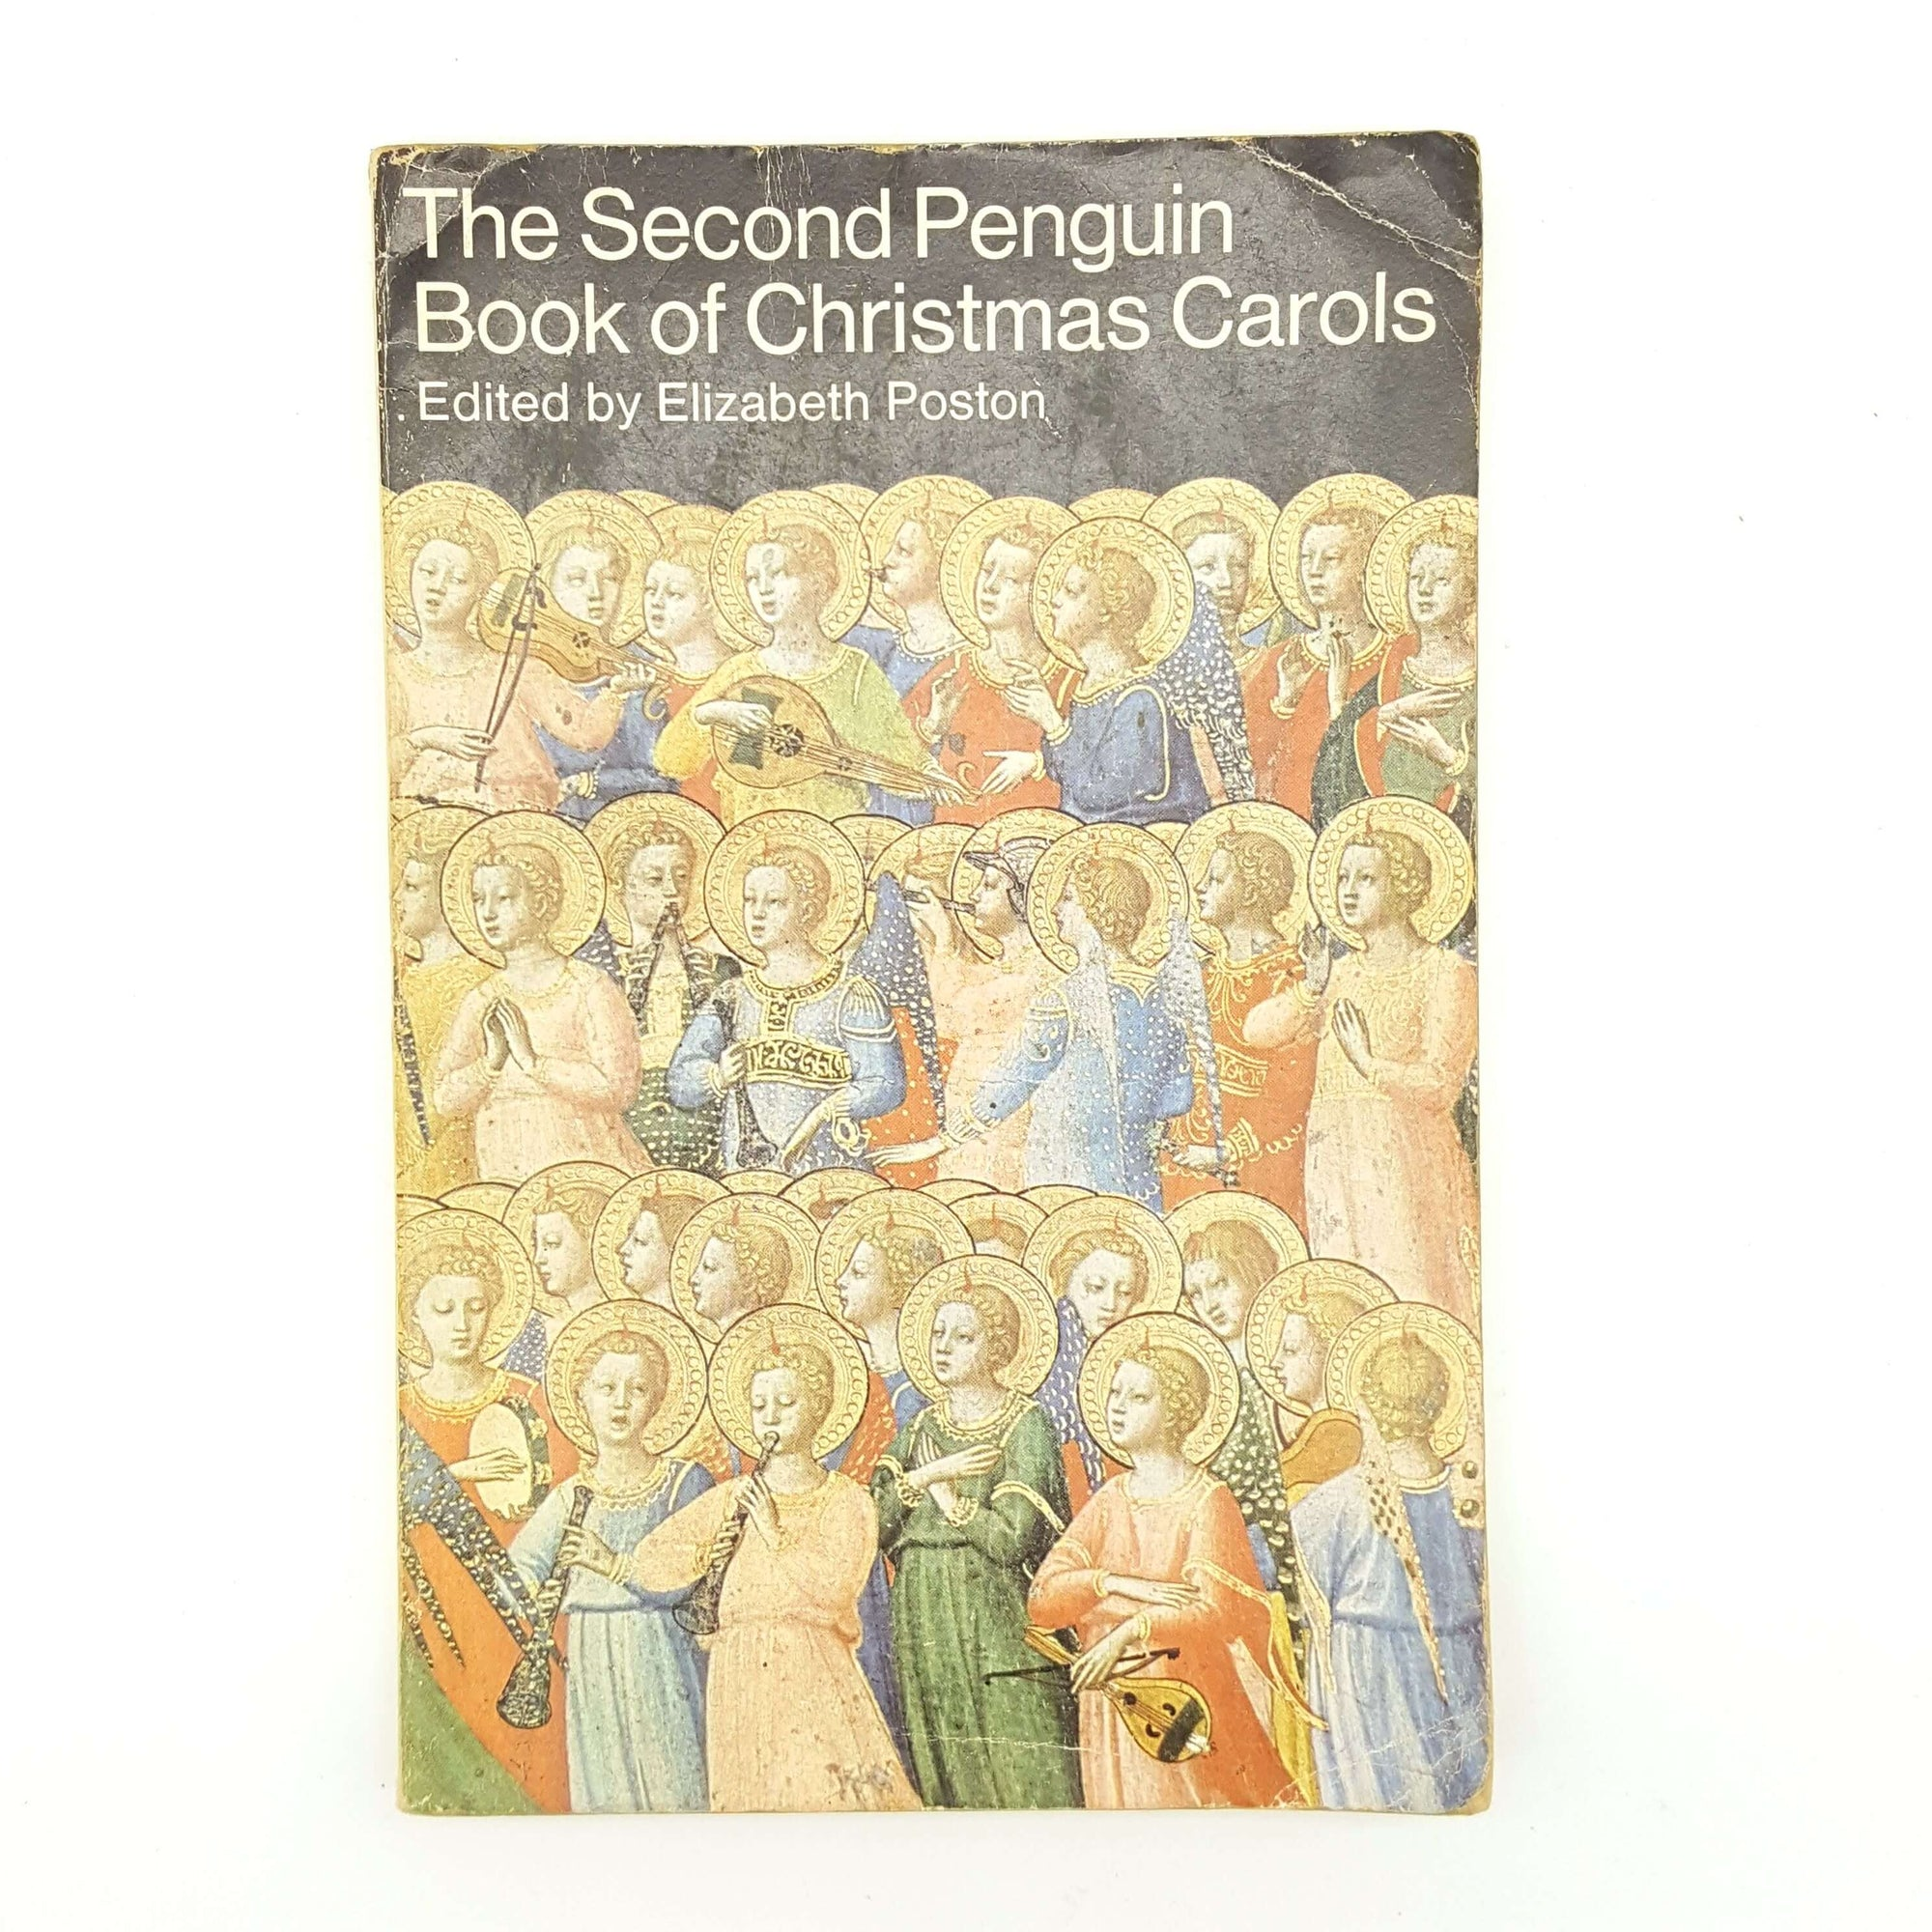 The Second Penguin Book of Christmas Carols Country House Library